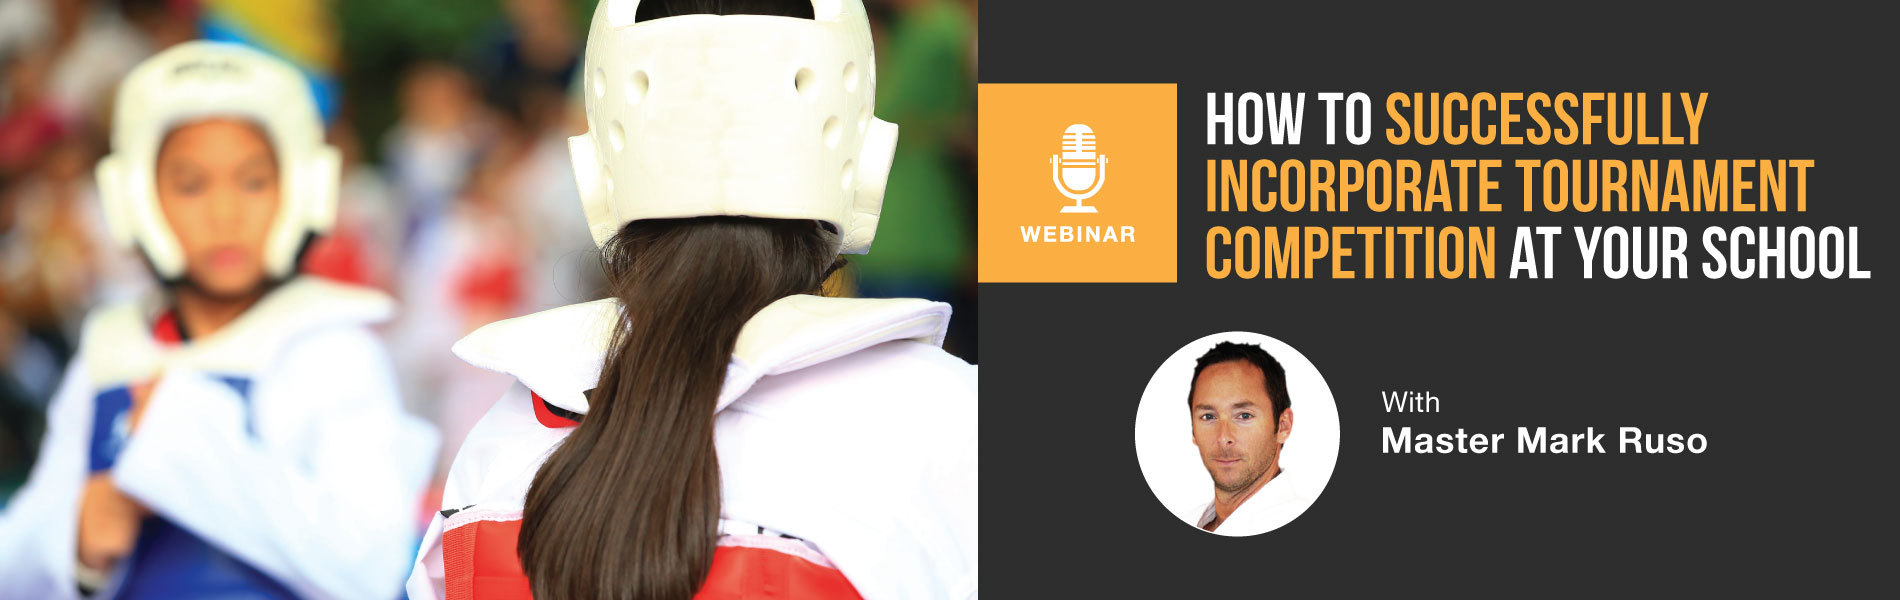 [Webinar] How to Successfully Incorporate Tournament Competition at your School | PerfectMind